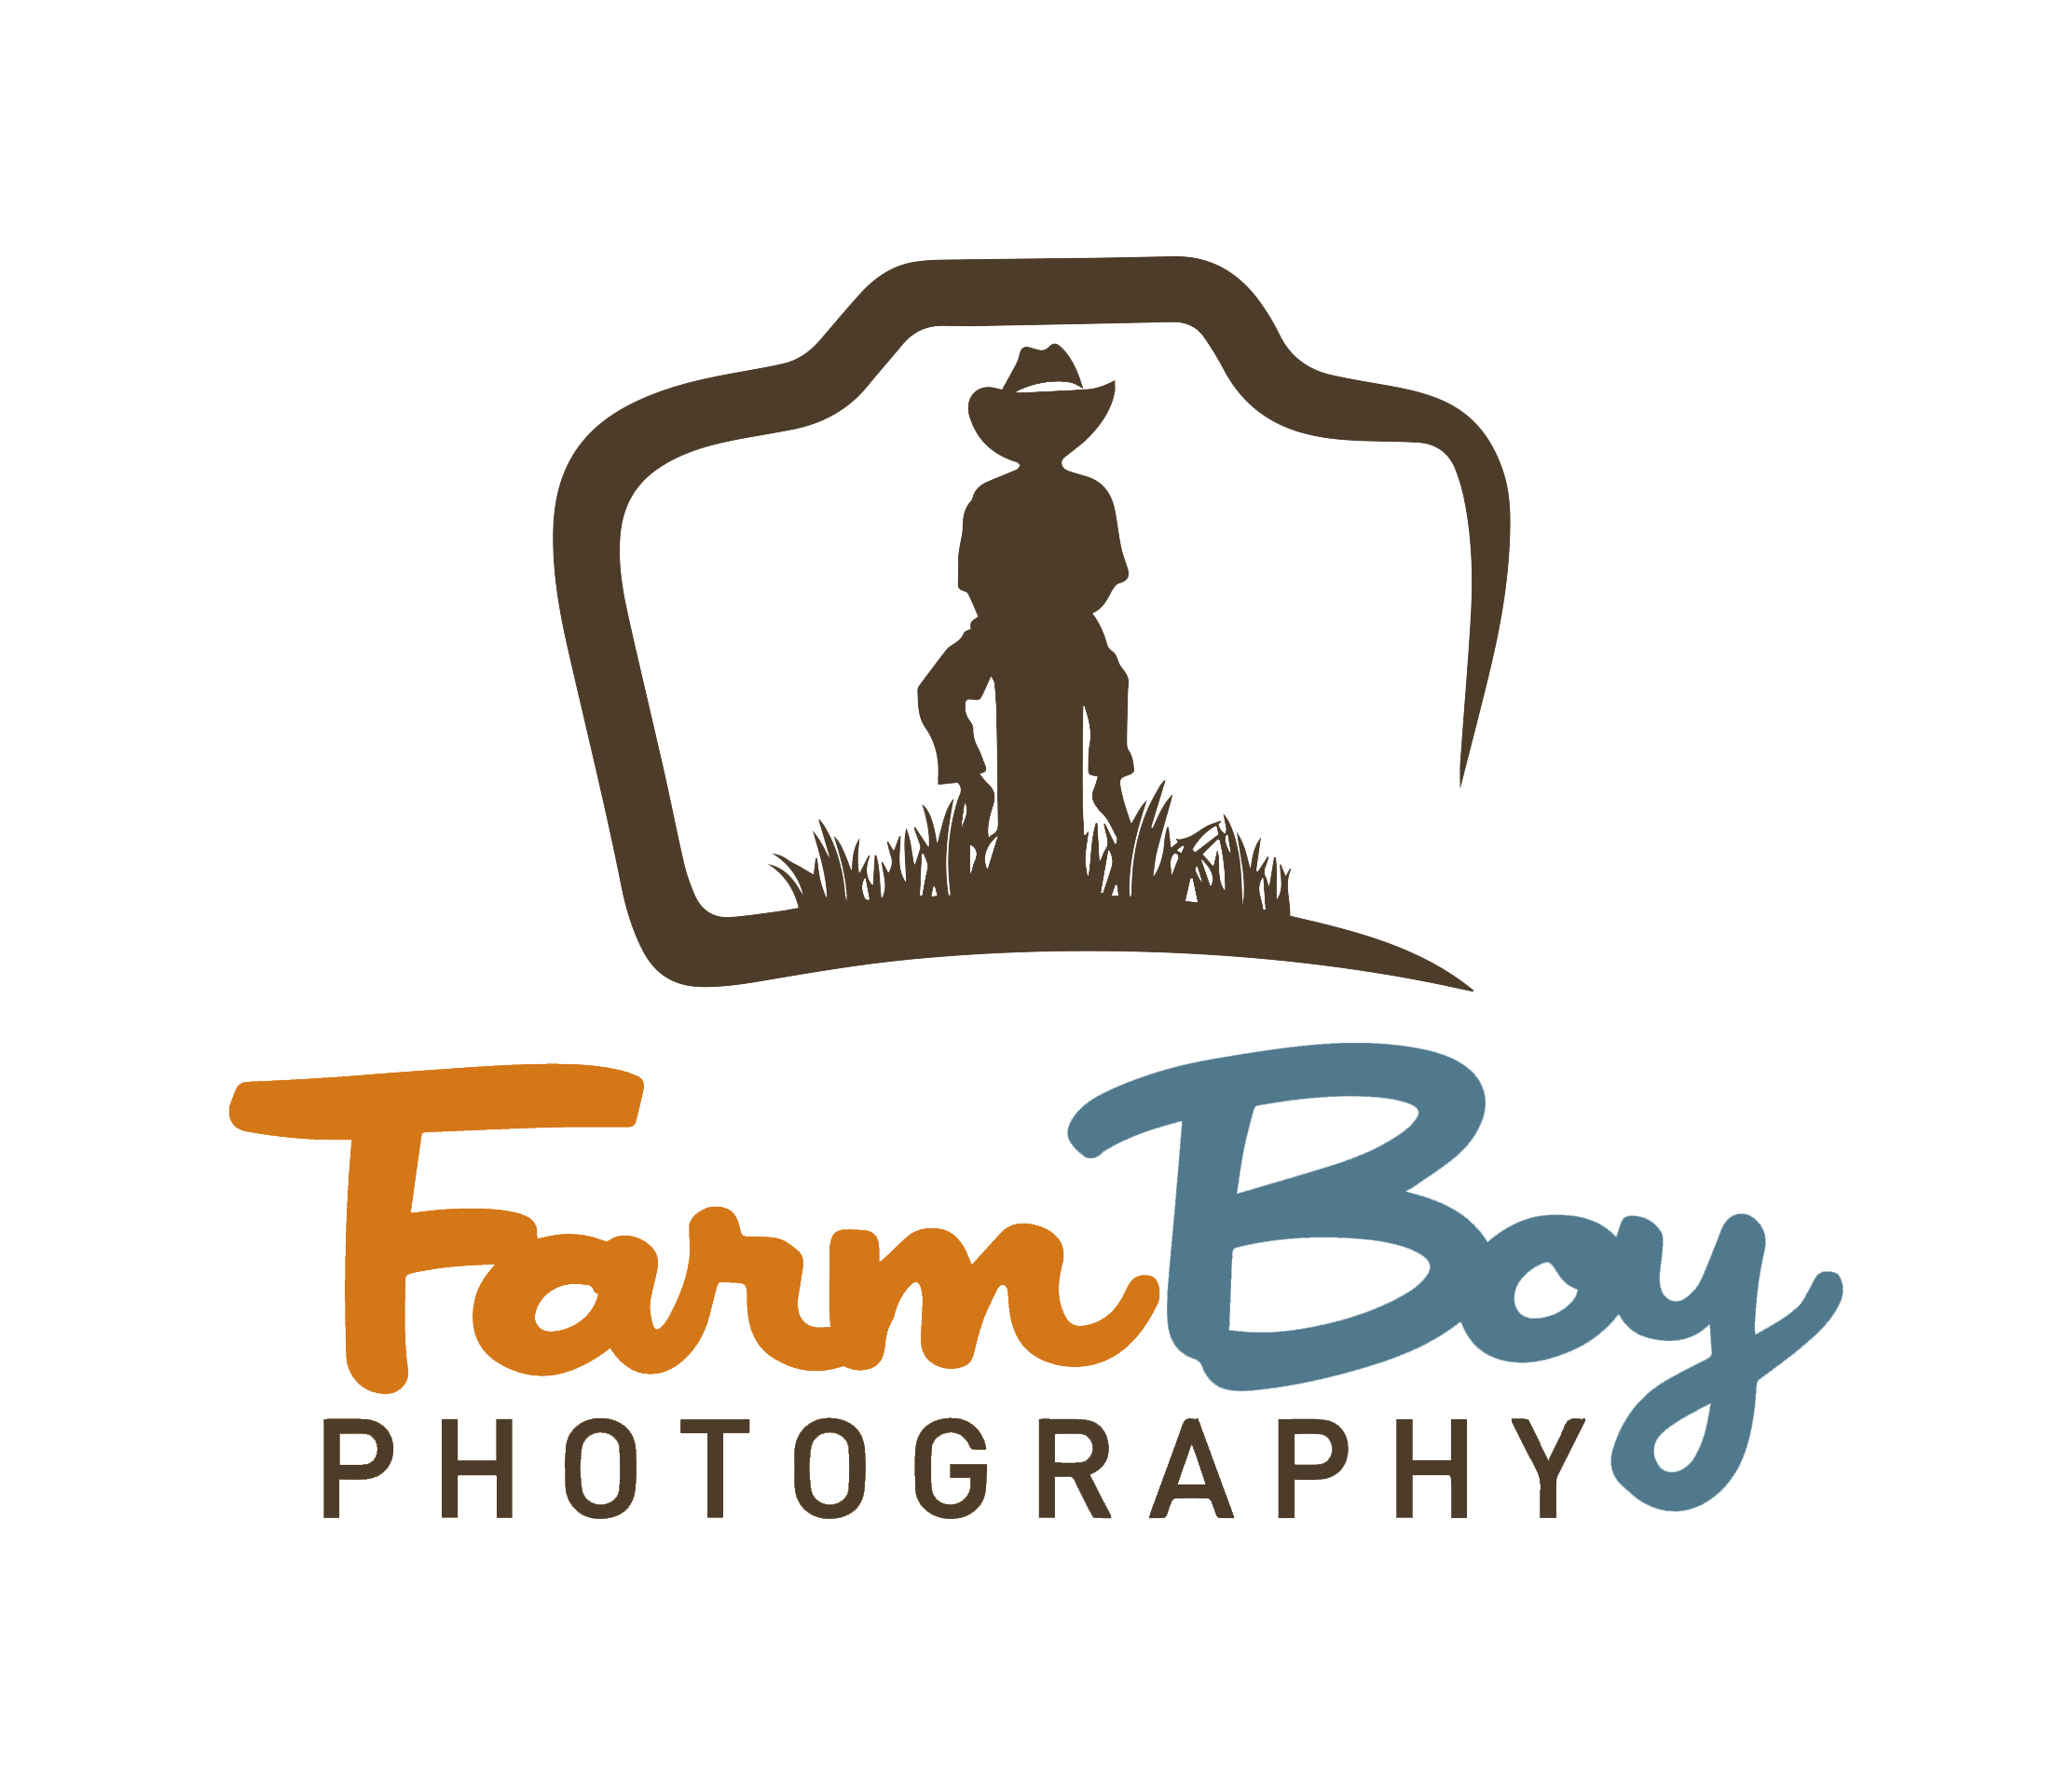 Farm Boy Photography